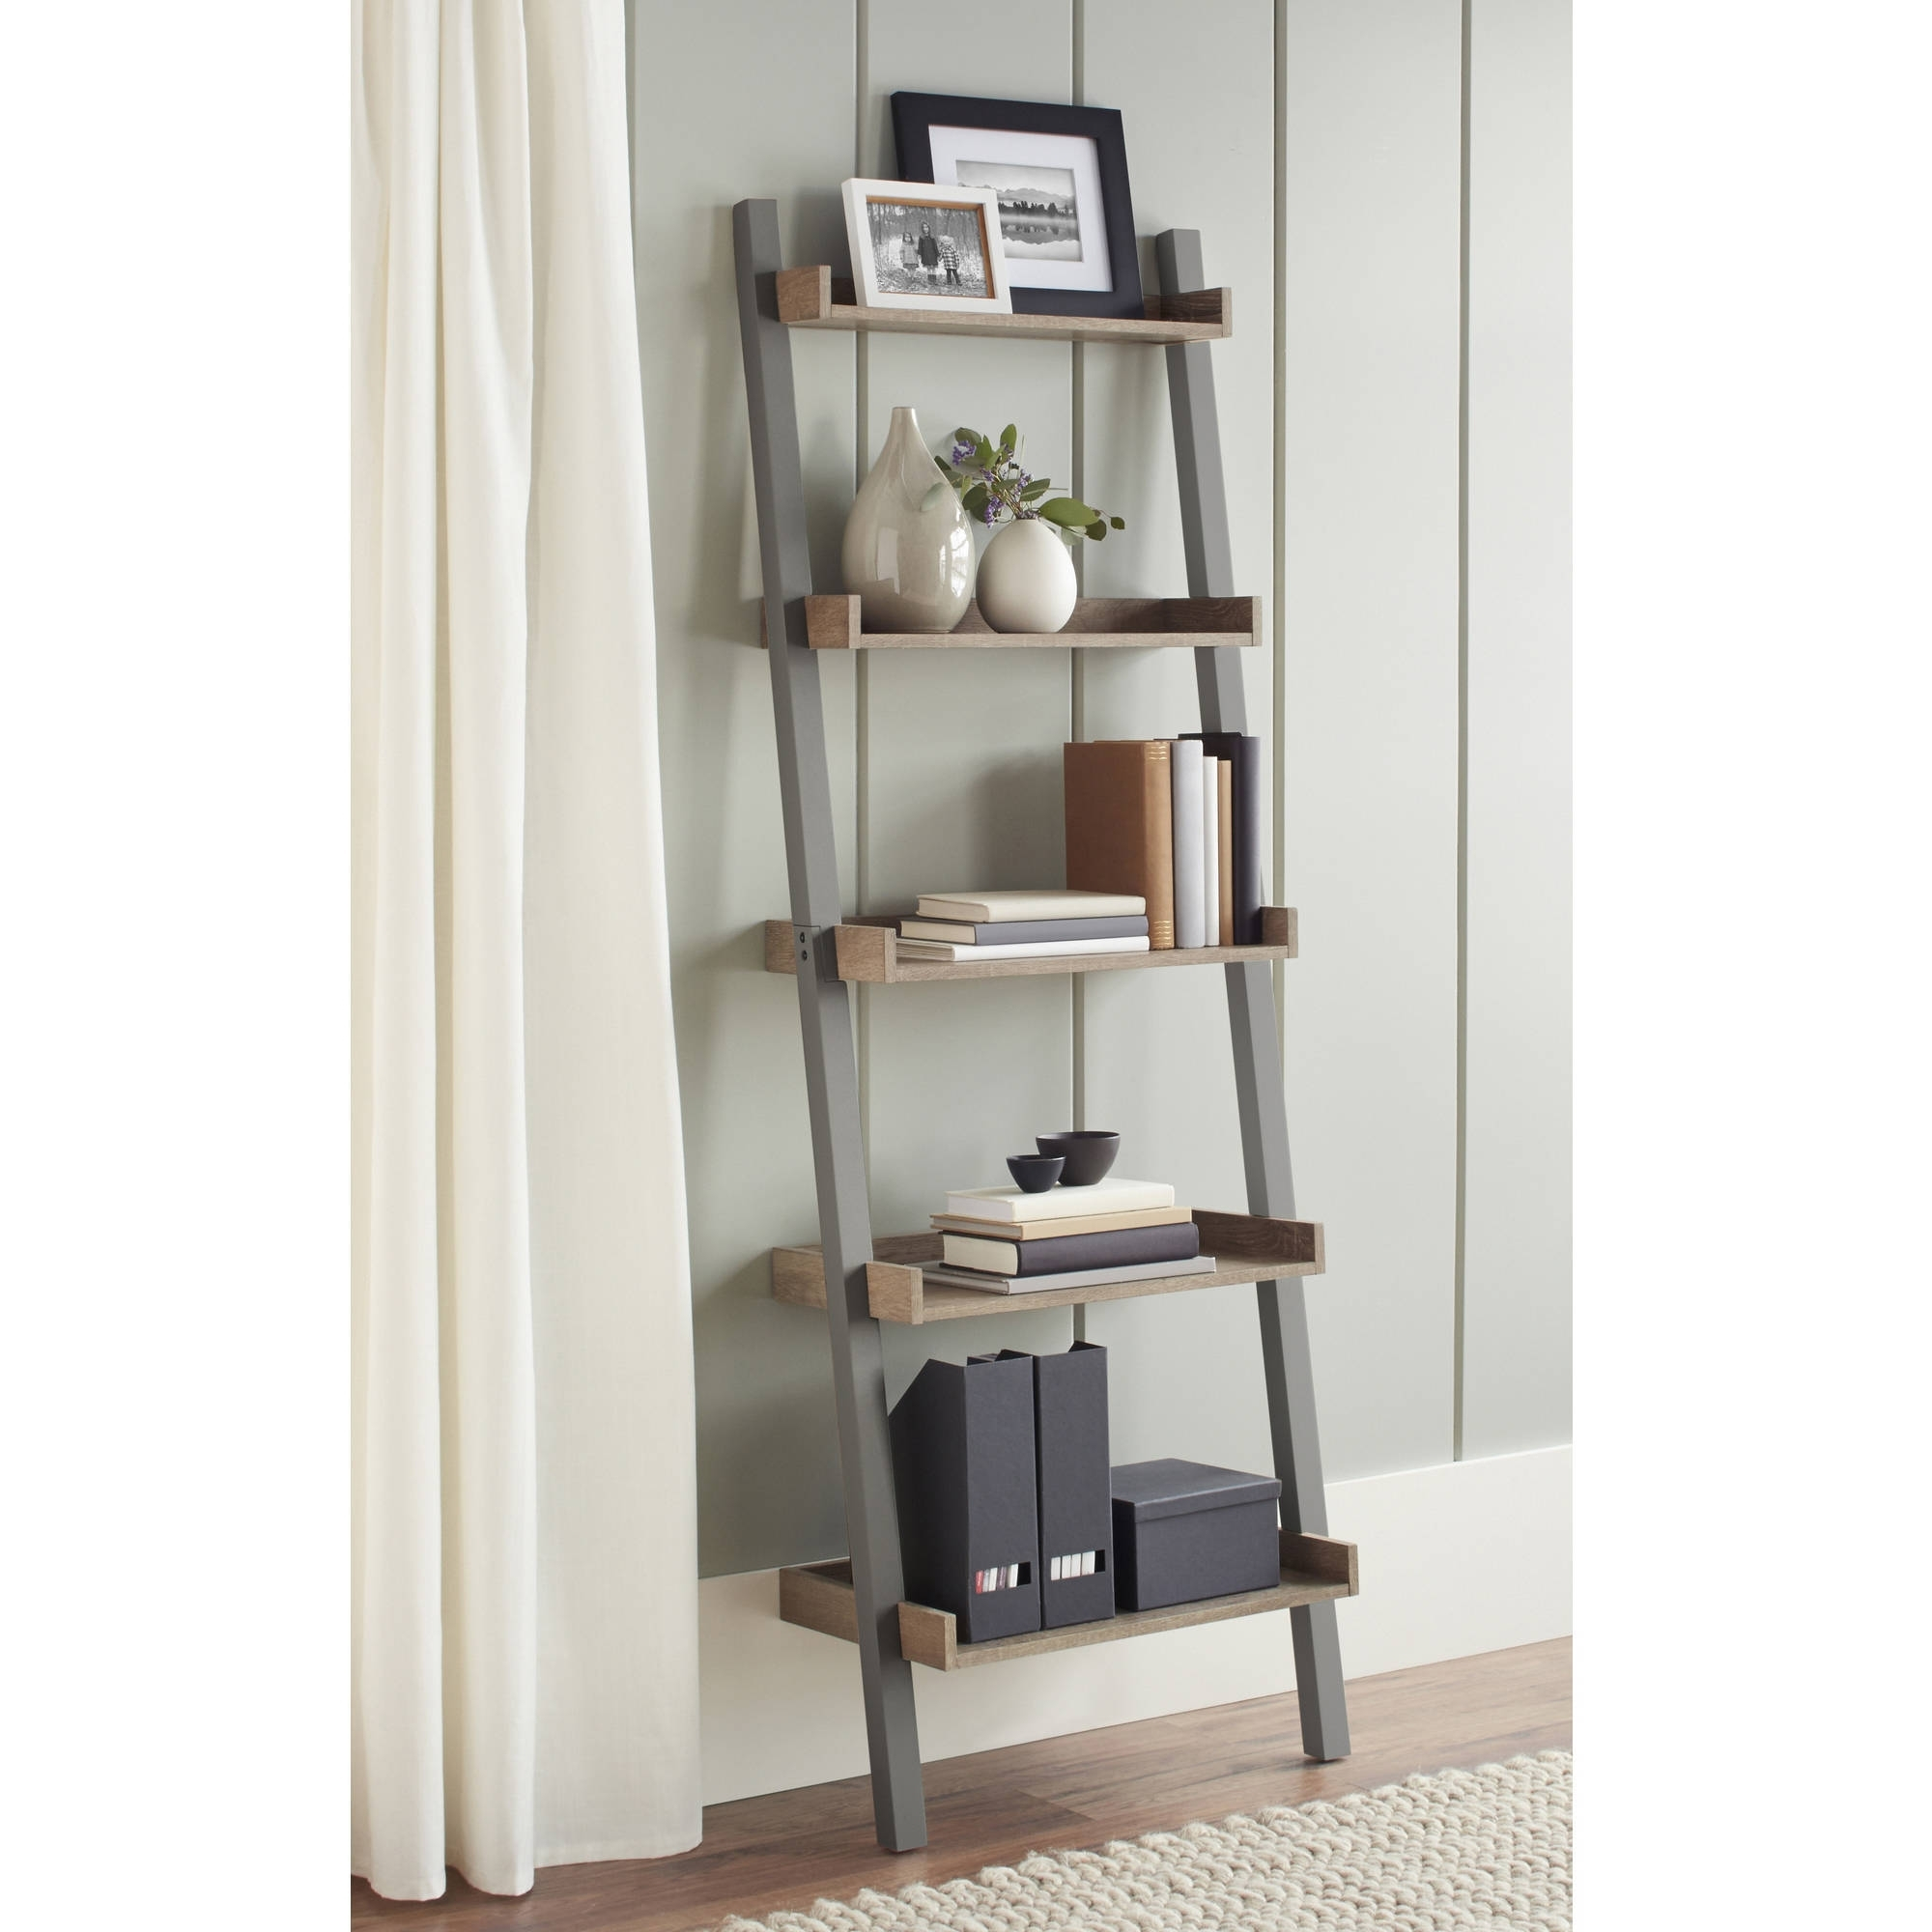 Well Known Leaning Shelf Bookcases With Regard To Ladder Shelf Bookcases Walmart Com Leaning ~ Idolza (View 15 of 15)